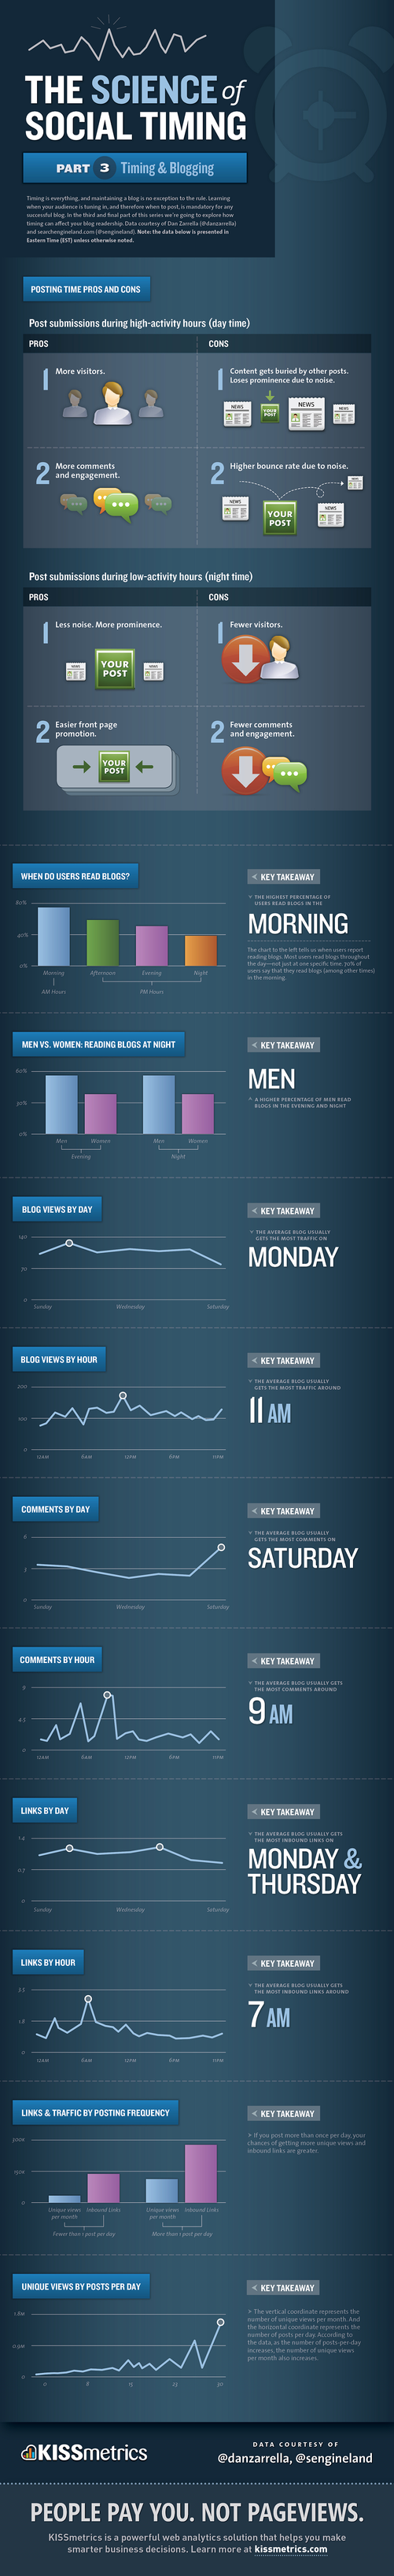 The Science Of Social Timing In Blogging [Infographic]